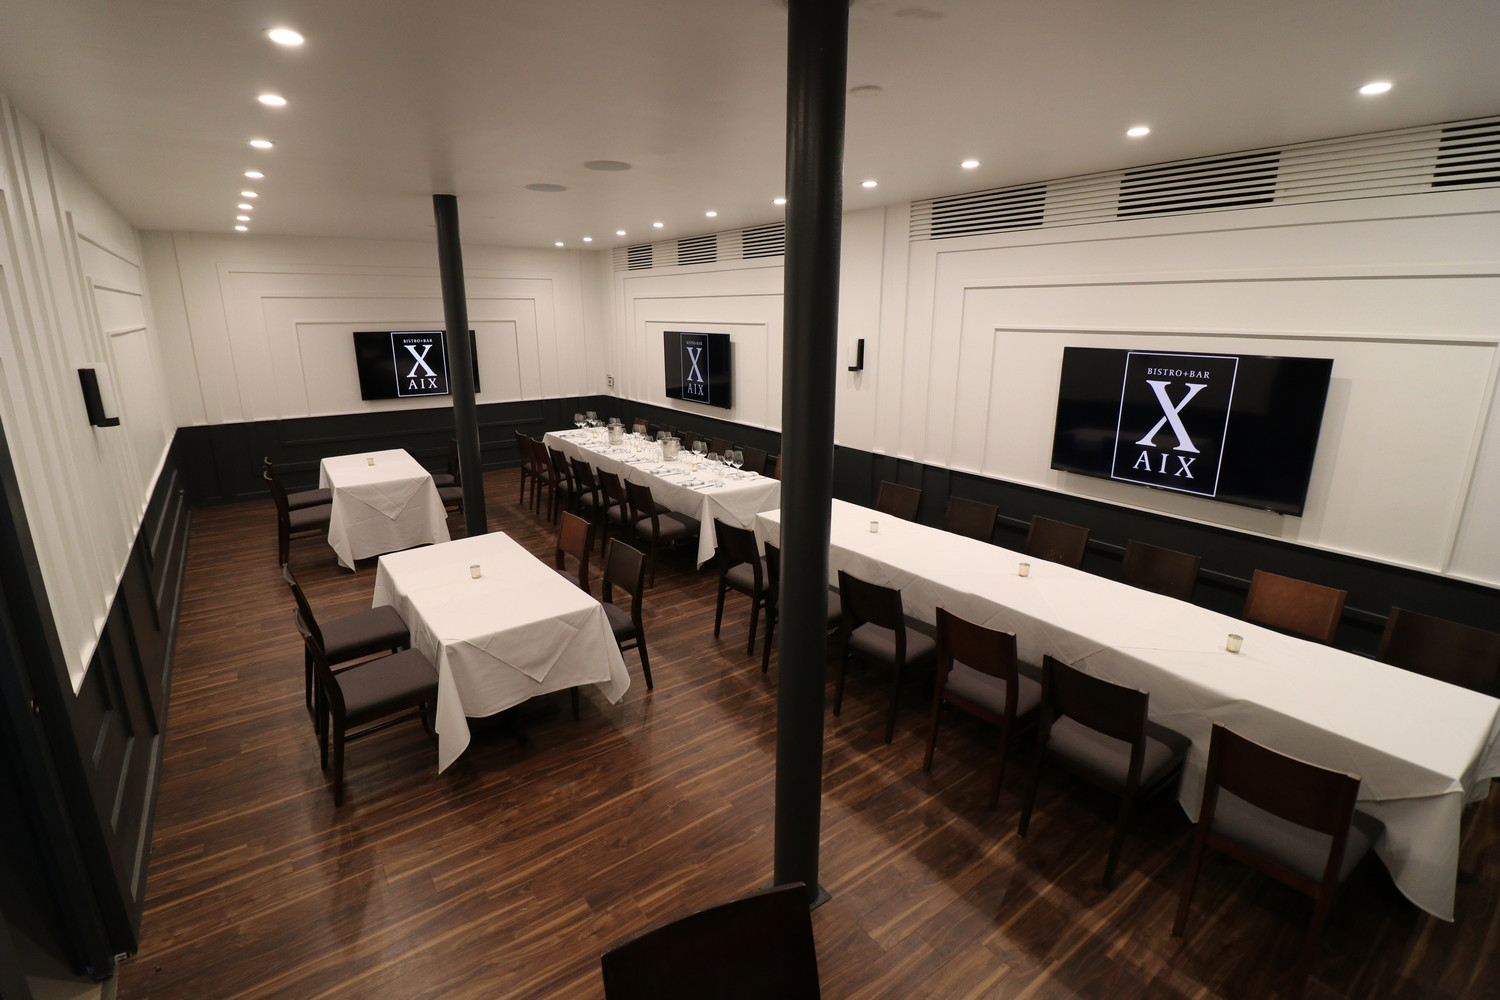 Bistro Aix now features a lighter and more refreshed design, as seen in the floors, curtains, chairs and tables.